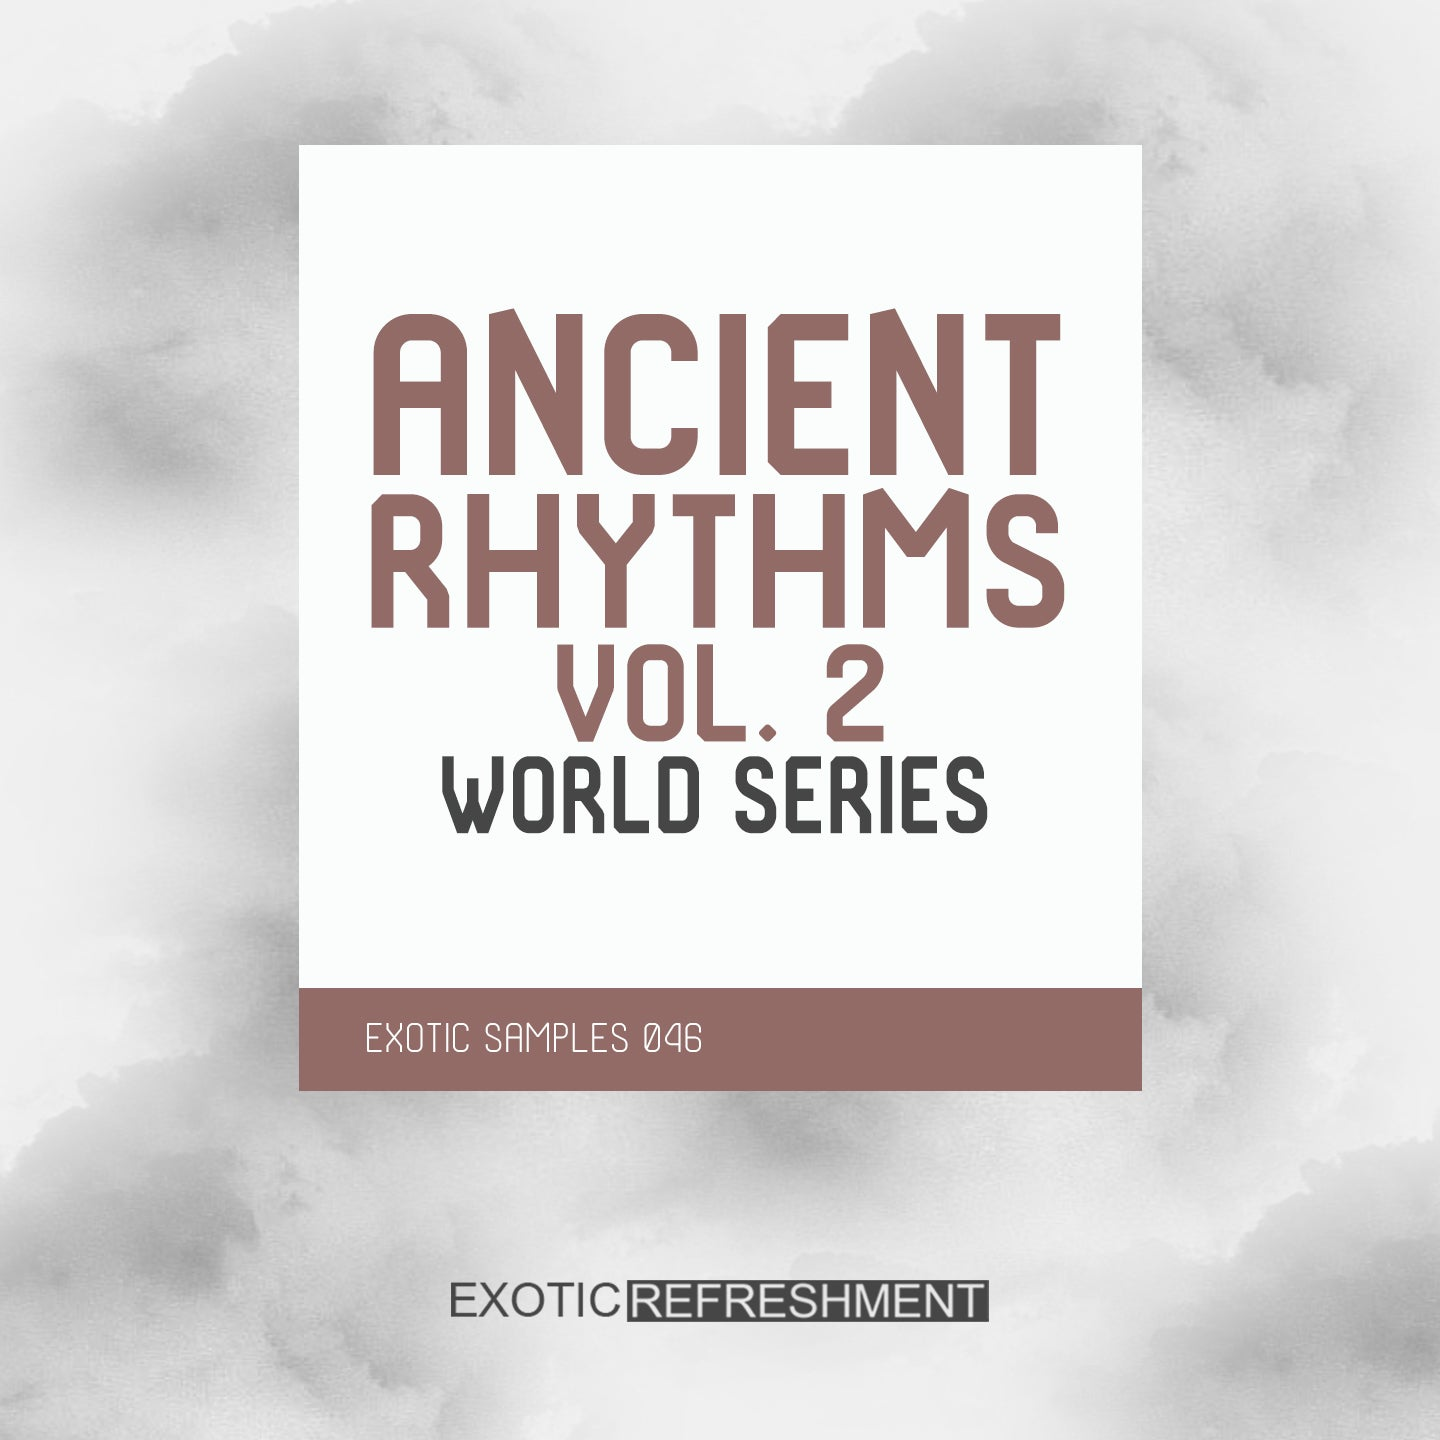 Ancient Rhythms 2 - World Series - Sample Pack